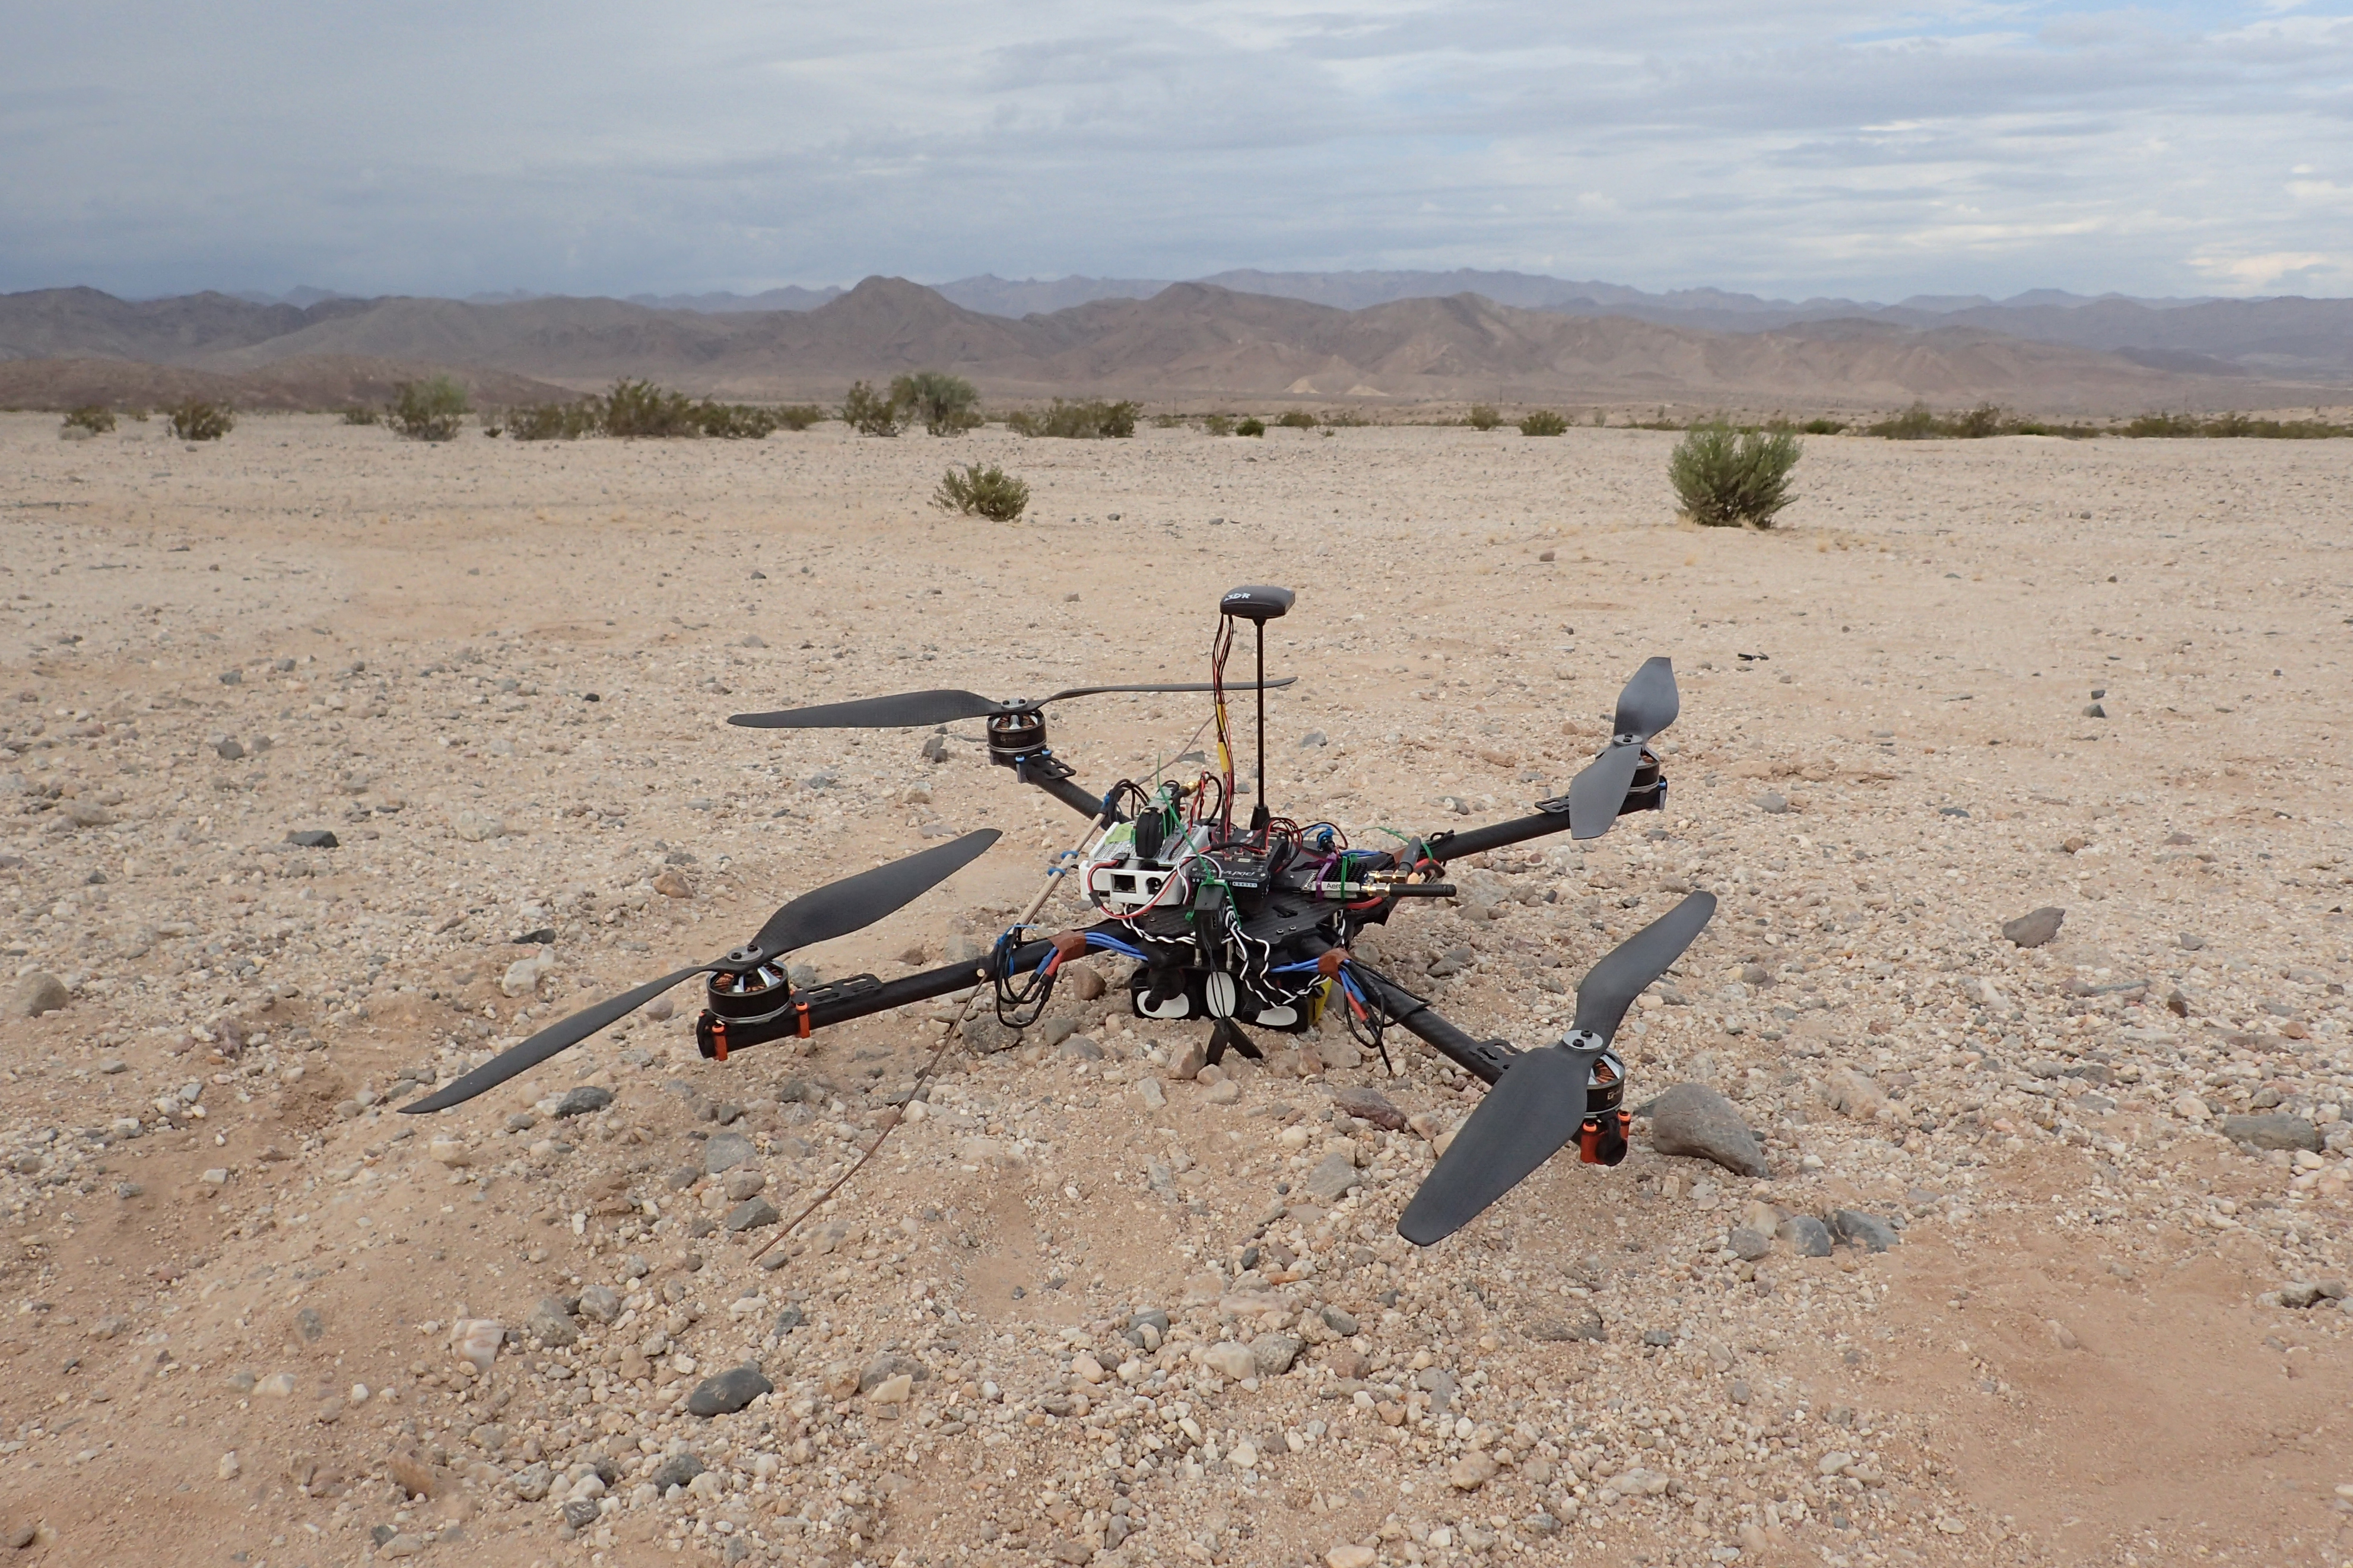 Engineers for Exploration students test UAV for Radio Collar Tracking in the Mojave Desert.